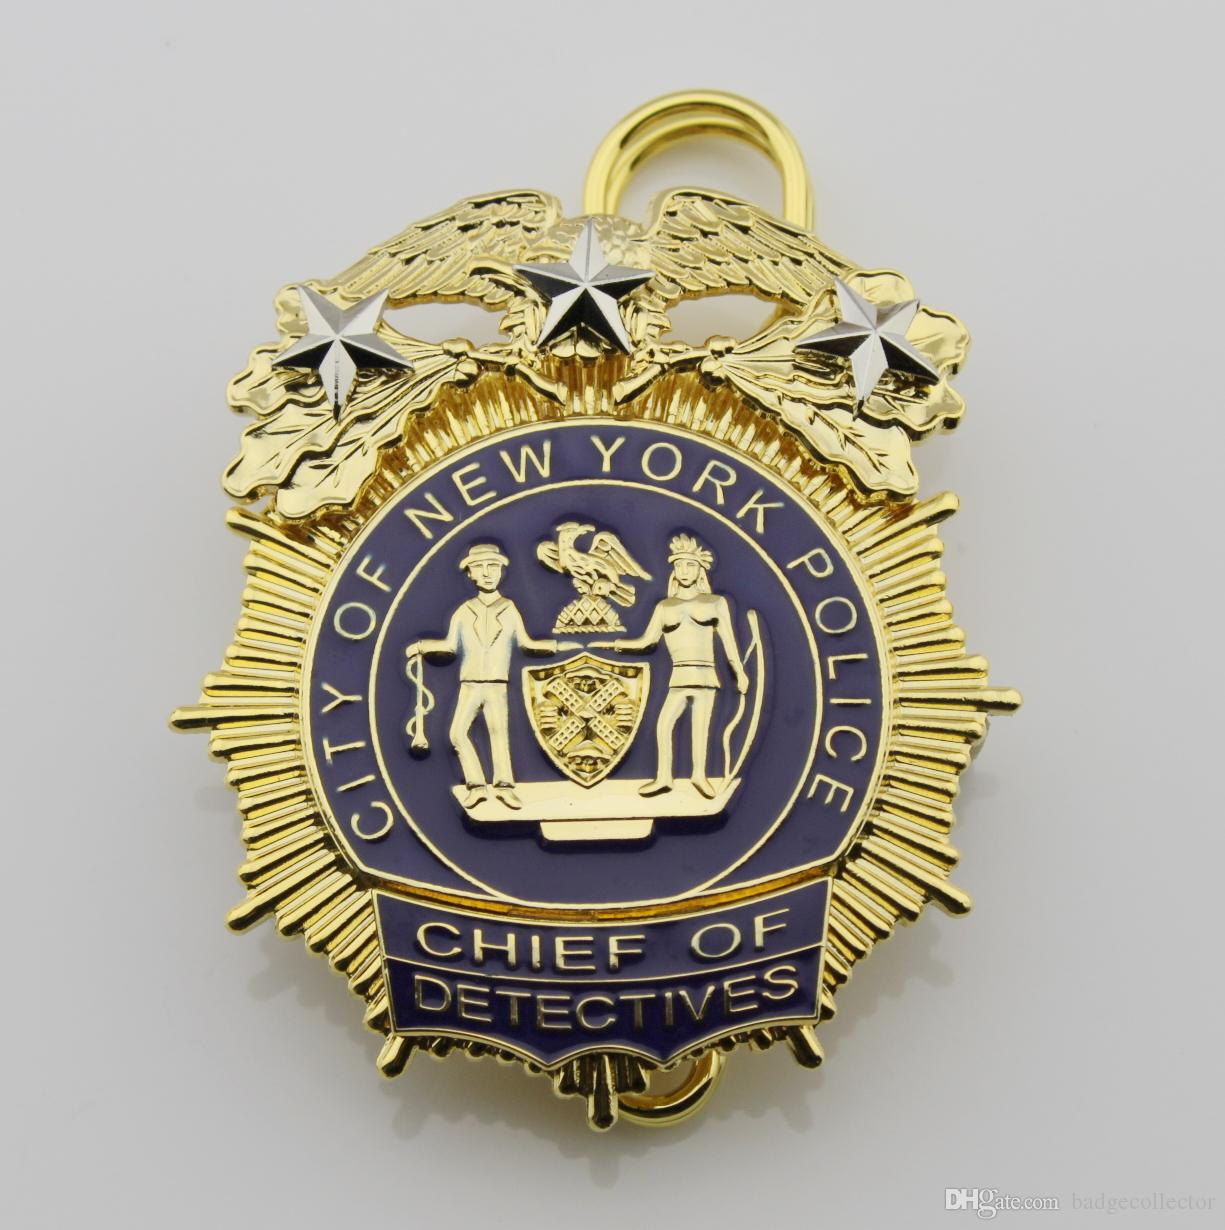 Pictures of Nypd Police Badge 2017 - #rock-cafe